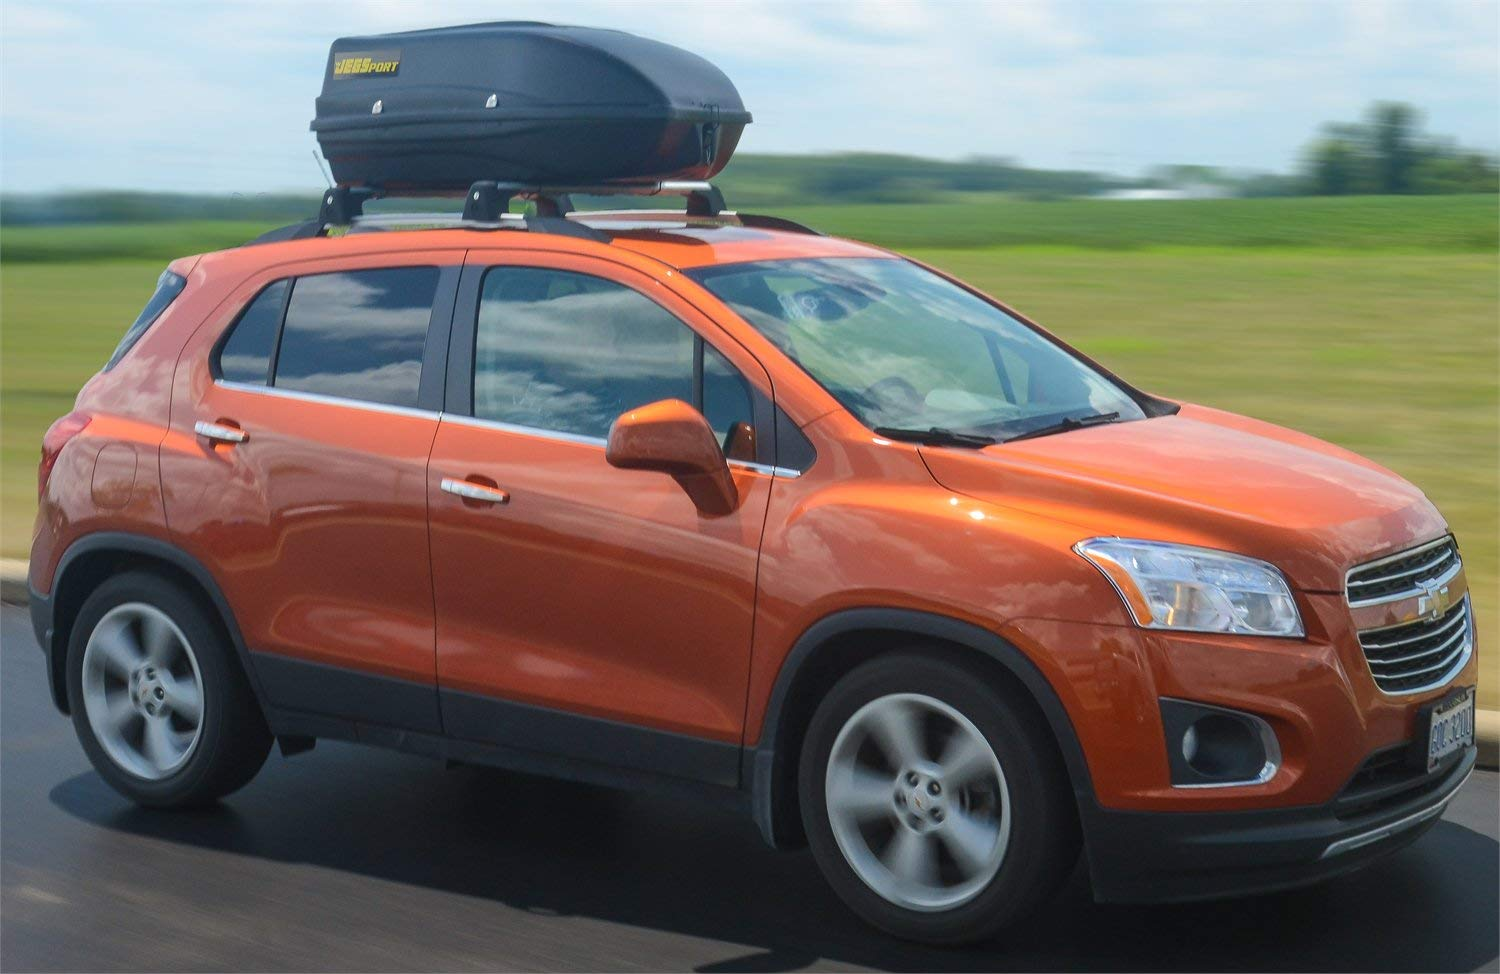 ft JEGS 90097 Rooftop Cargo Carrier Capacity: 9 cu Carrying Capacity 100 lb